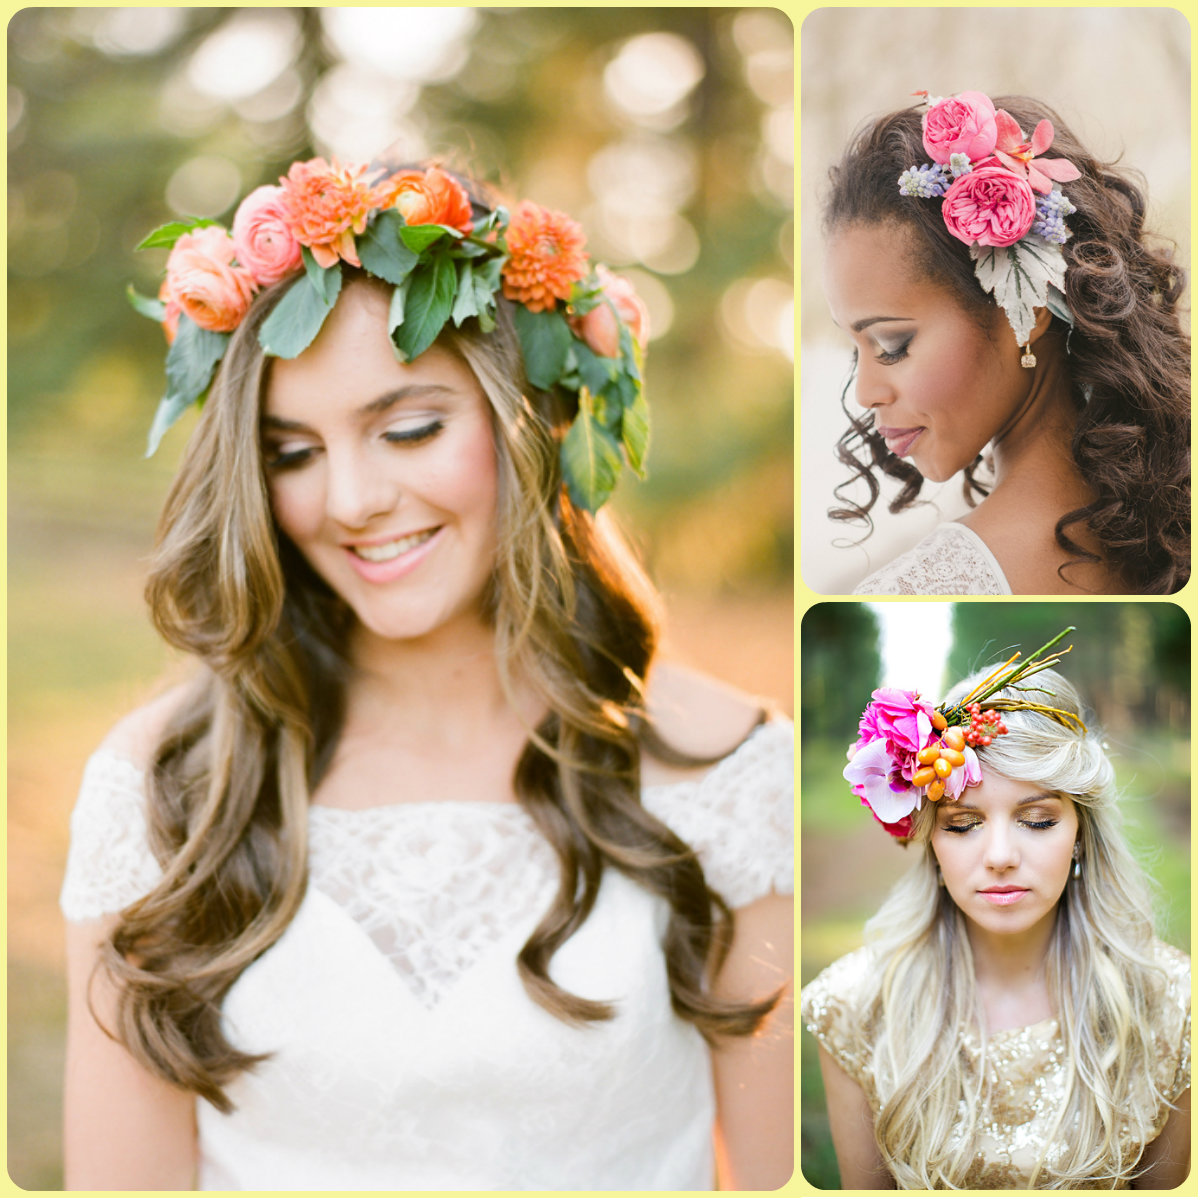 Summer bridal hairstyles with flowers 2015 hairstyles 2017 hair summer wedding hairstyles with flowers izmirmasajfo